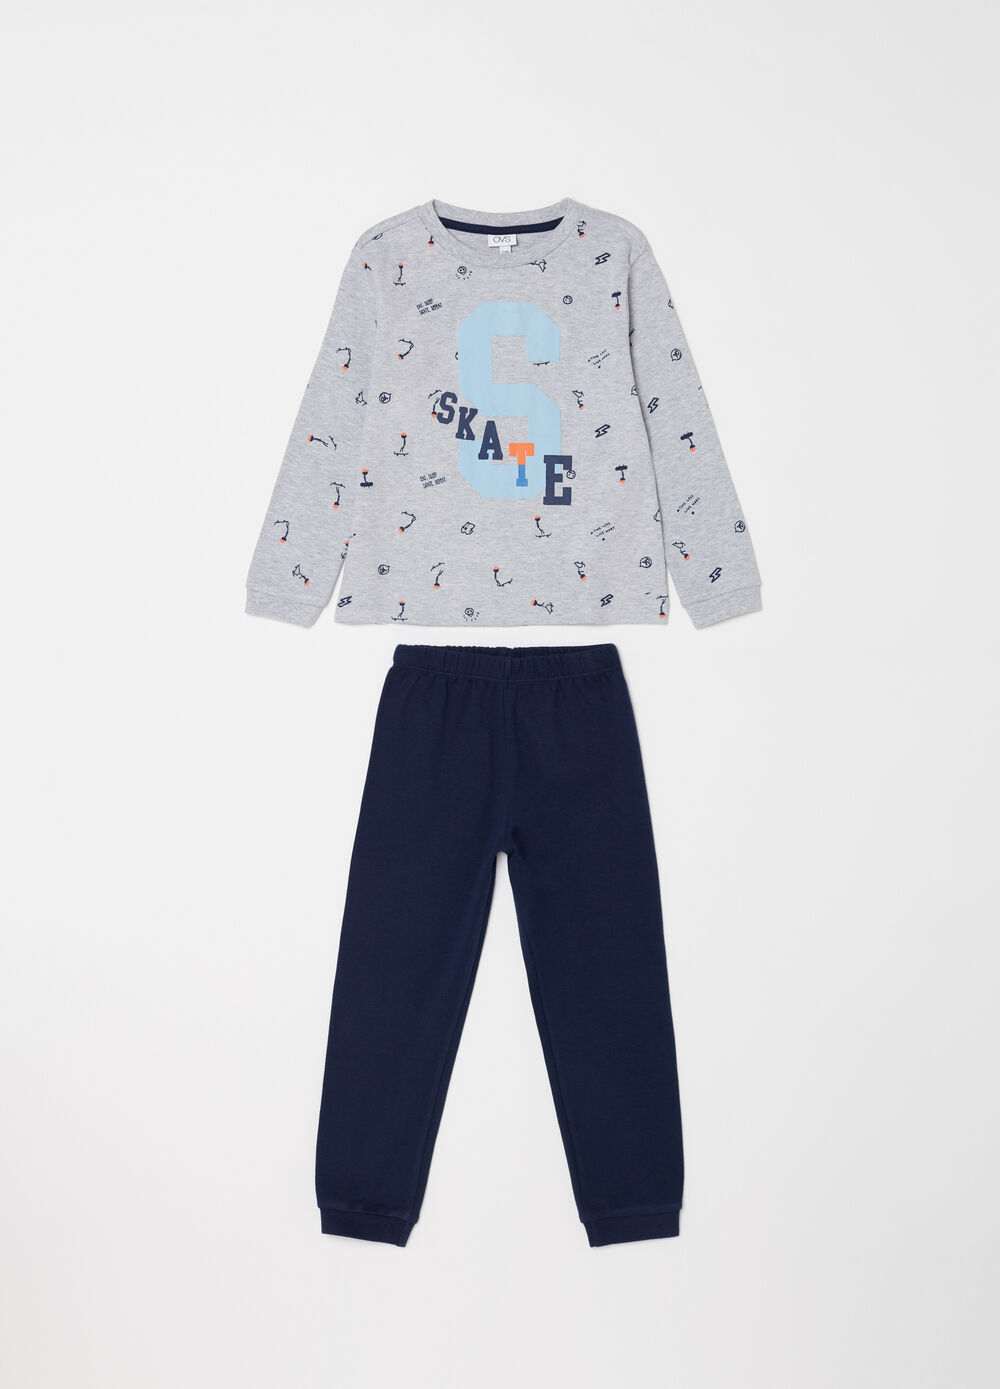 Full-length warm cotton pyjamas with skater pattern